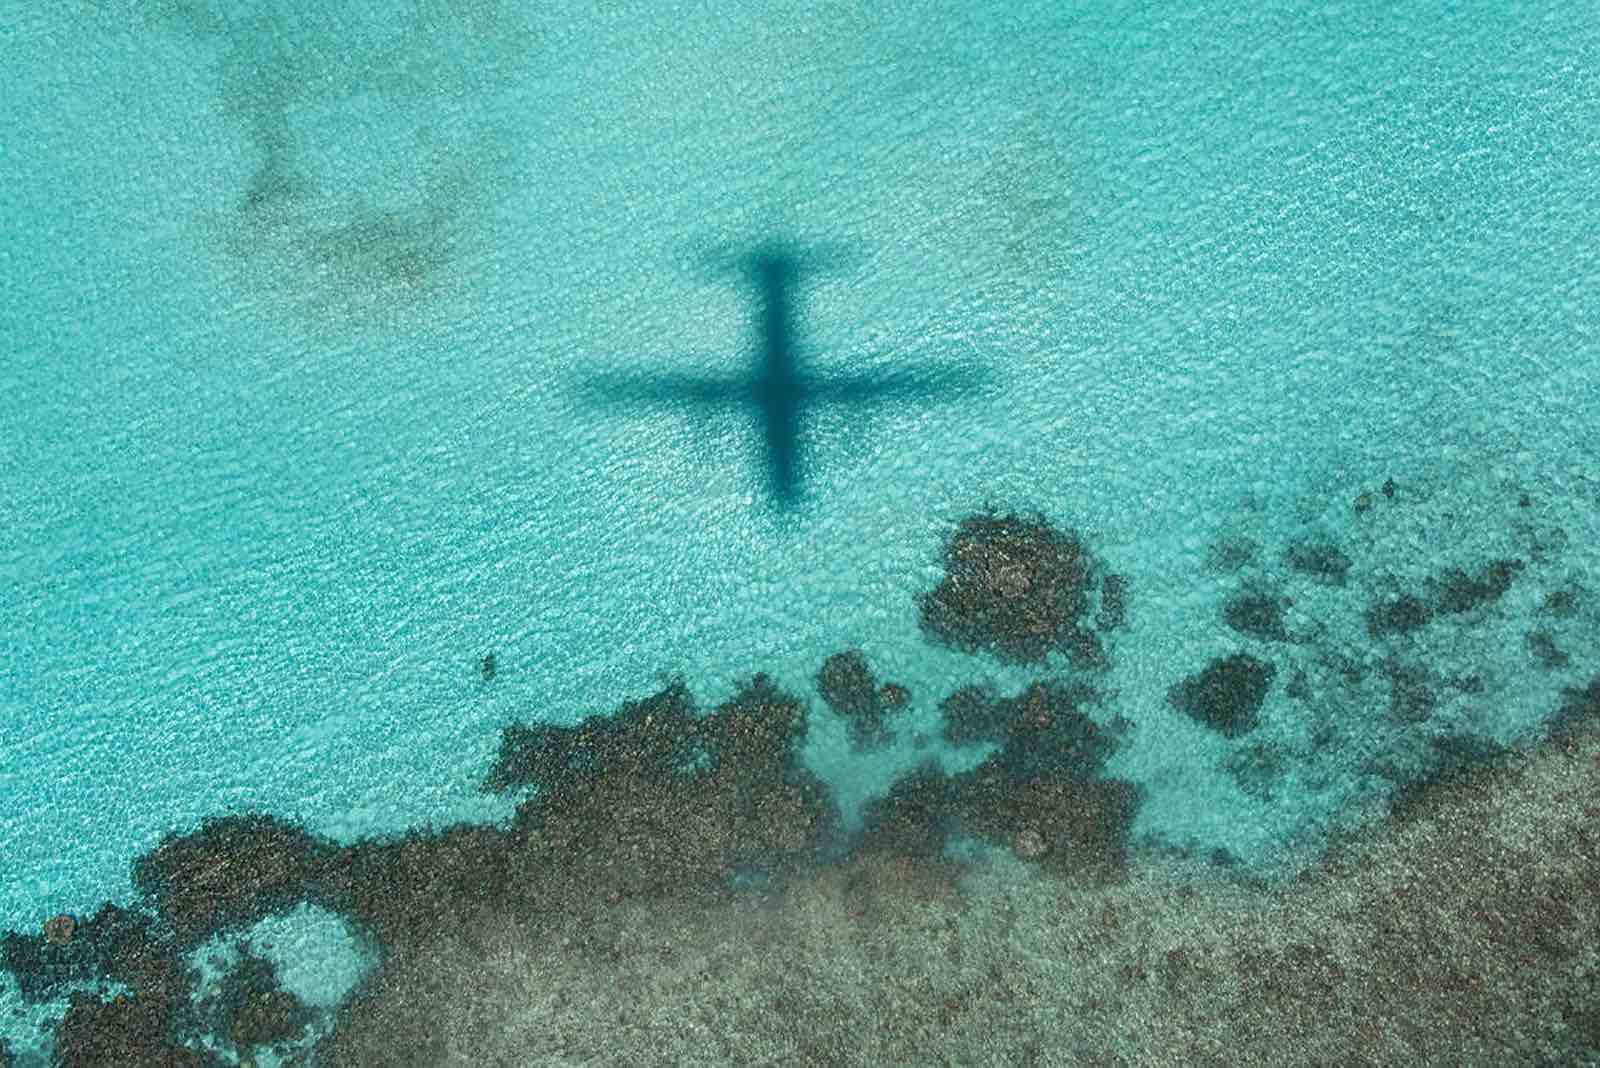 RAAF C-27J Spartan aircraft flying over the  Solomon Islands as part of Operation Solania, March 2020 (Department of Defence)